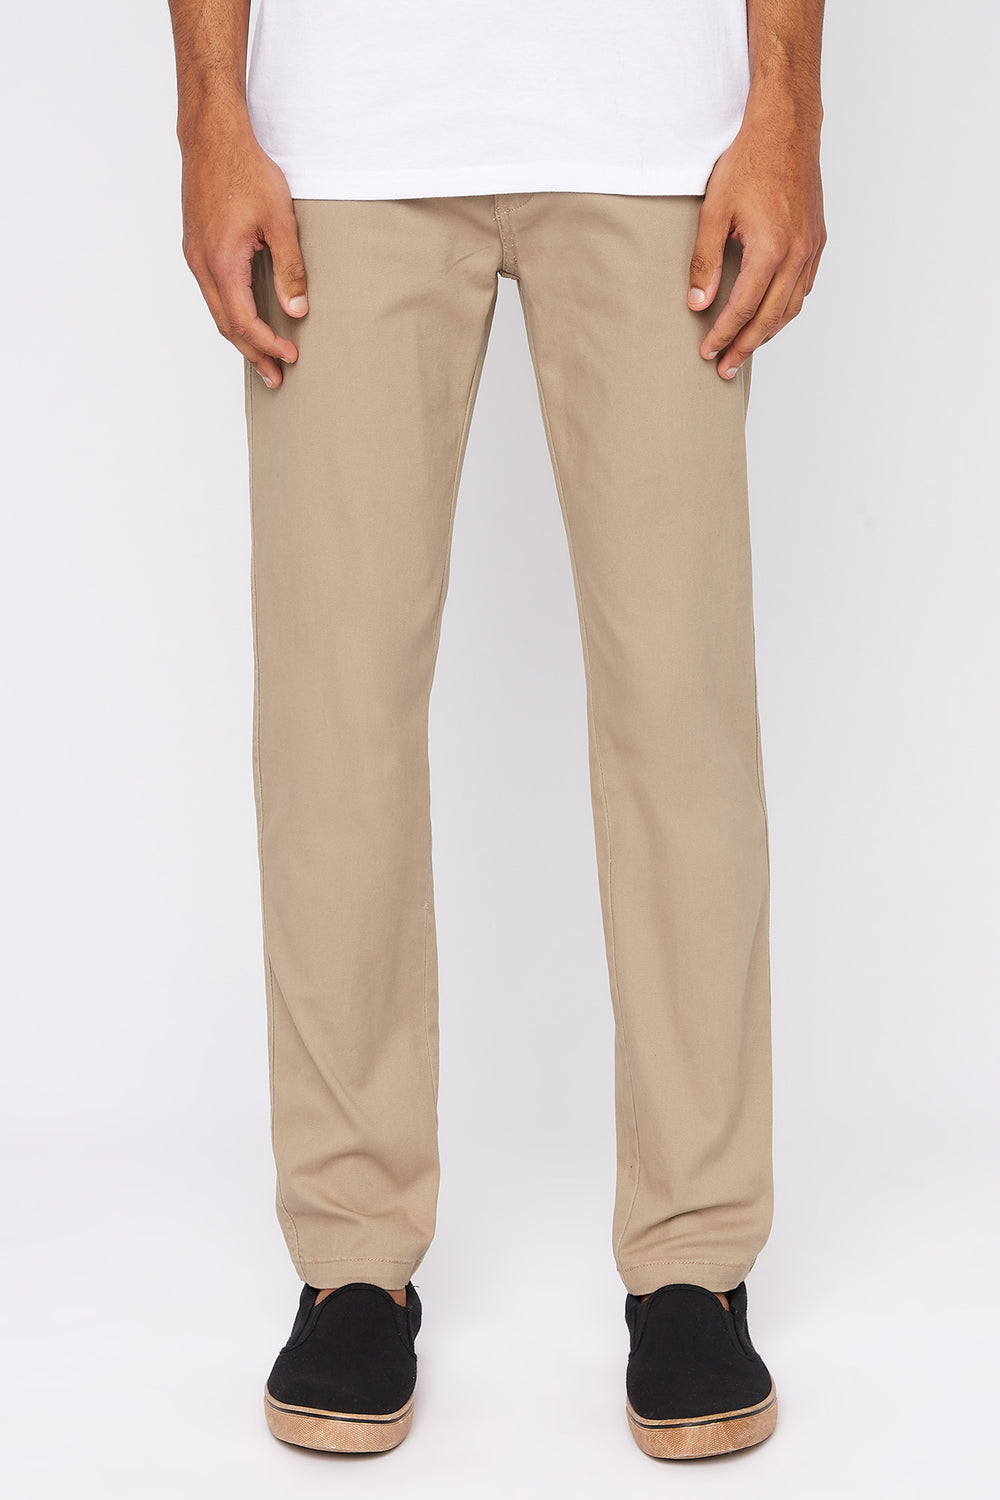 Pantalon Chino West49 Homme Sable